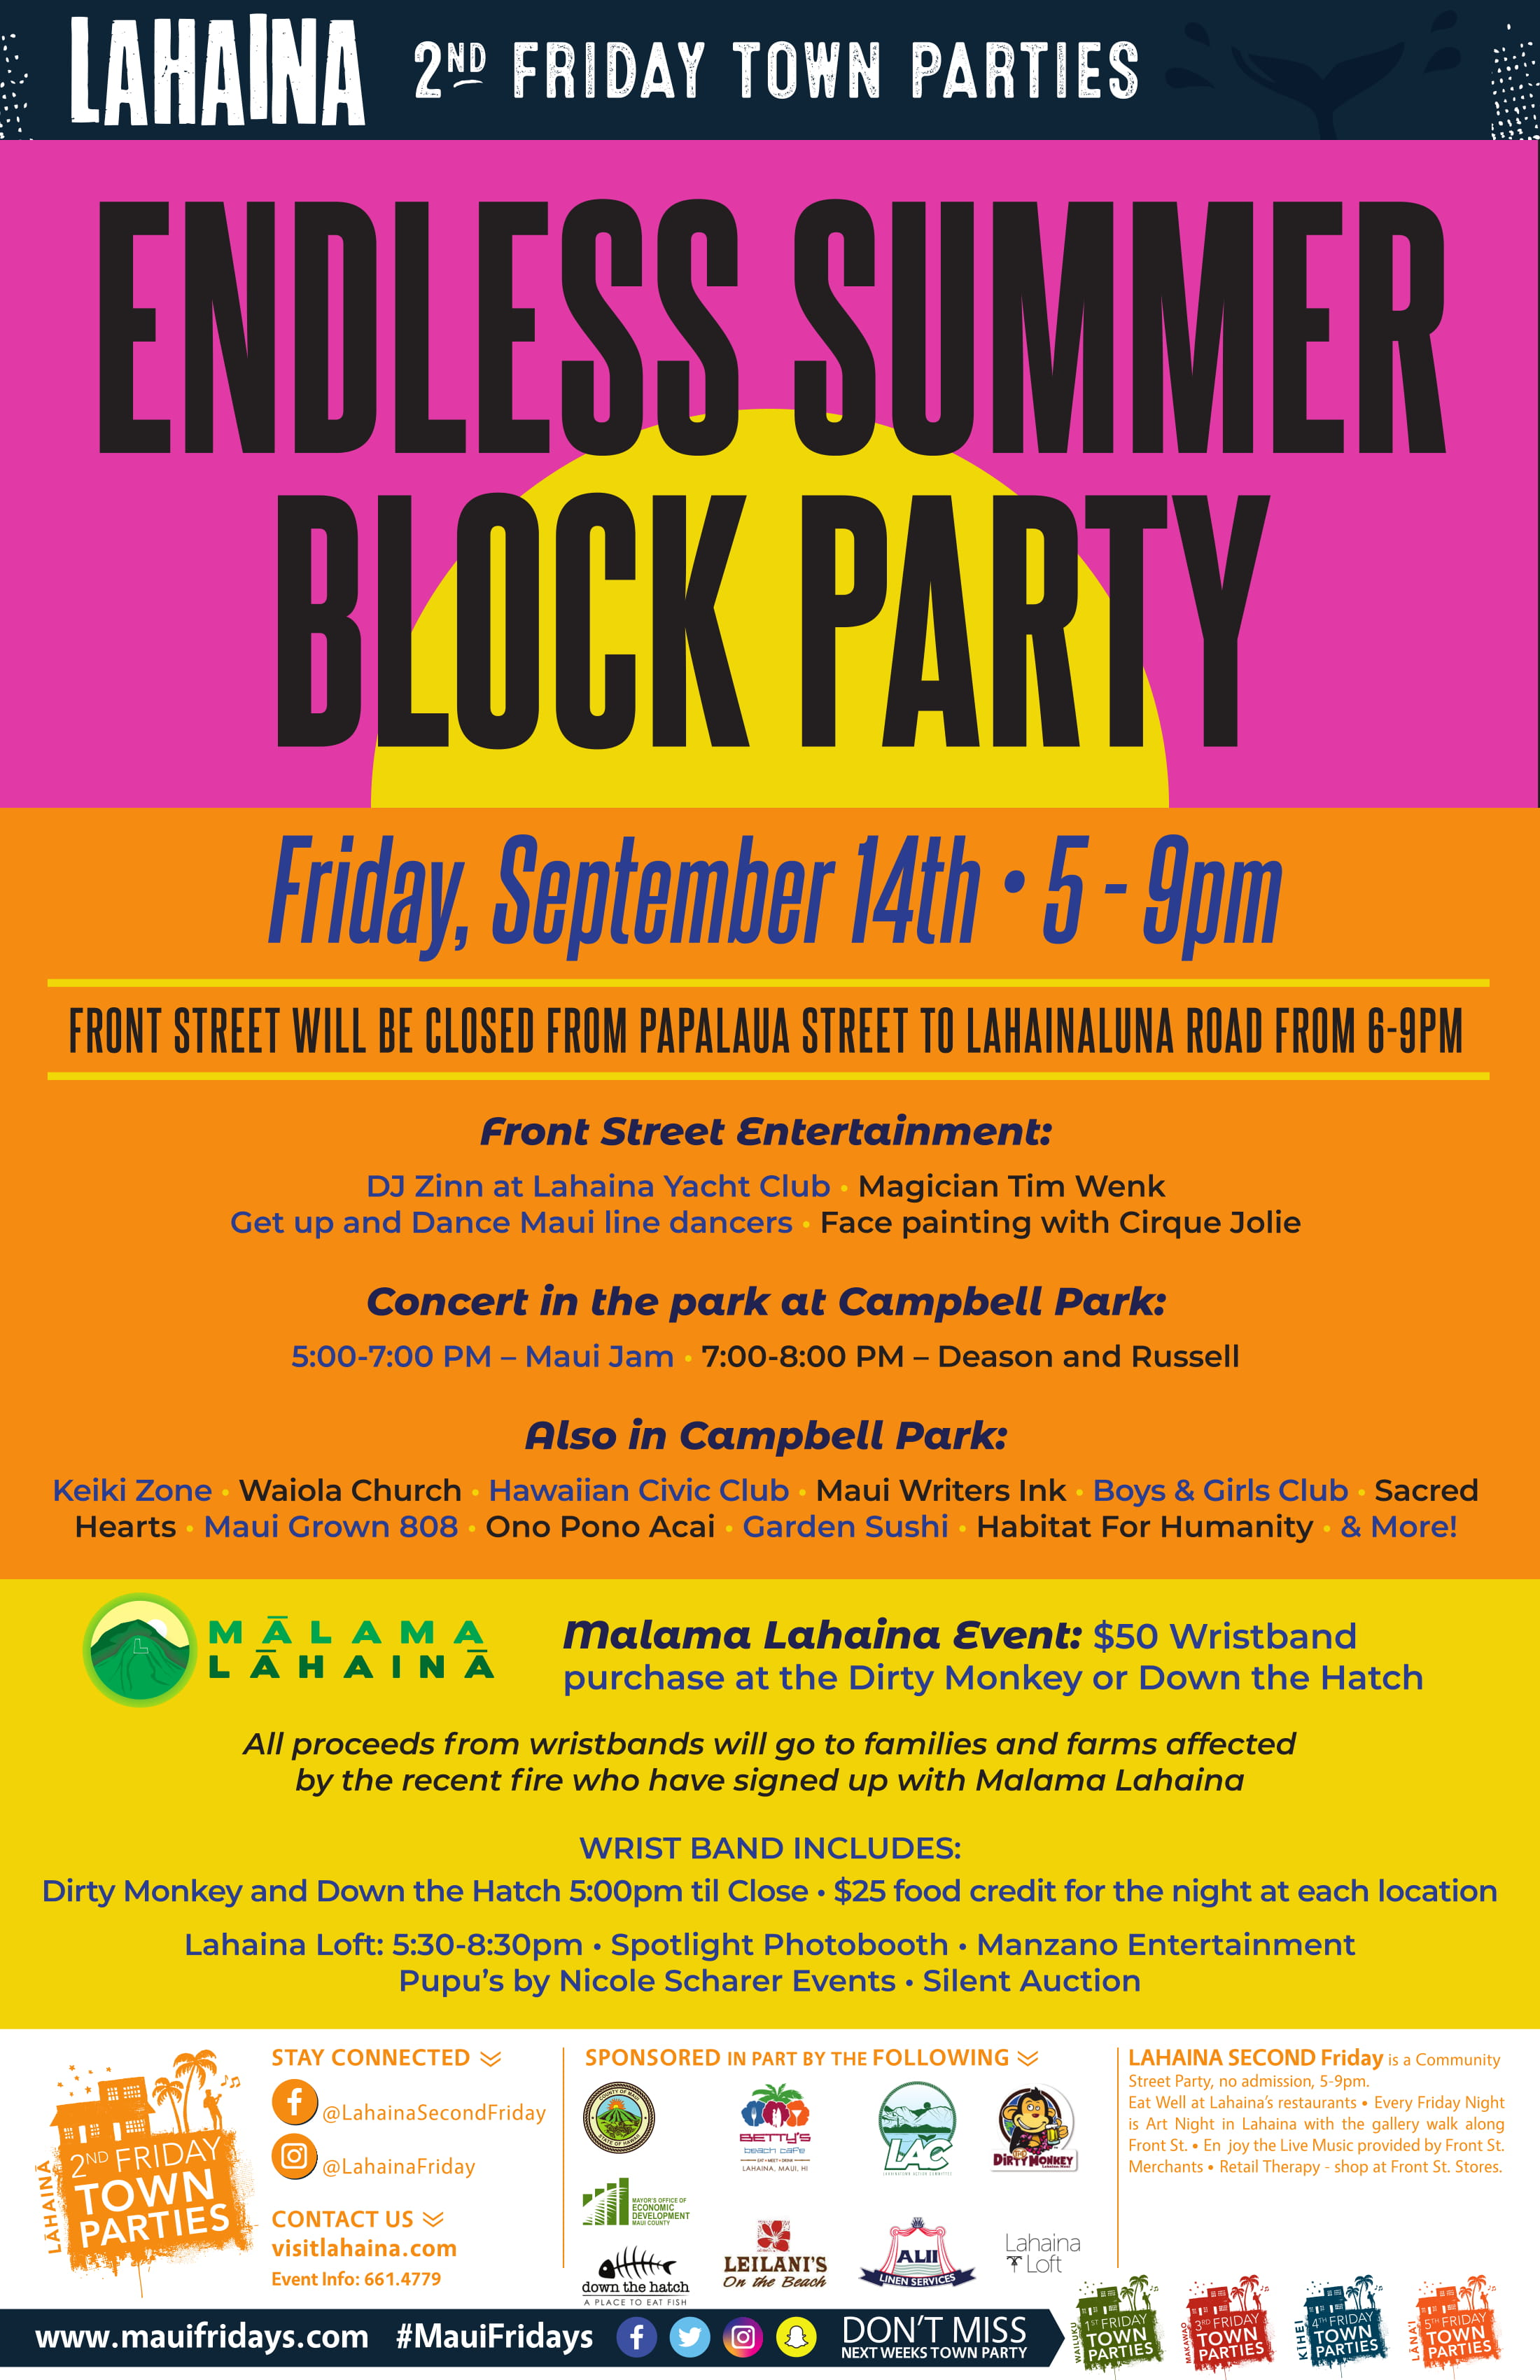 Lahaina 2nd Friday Offers Five Blocks of Fun